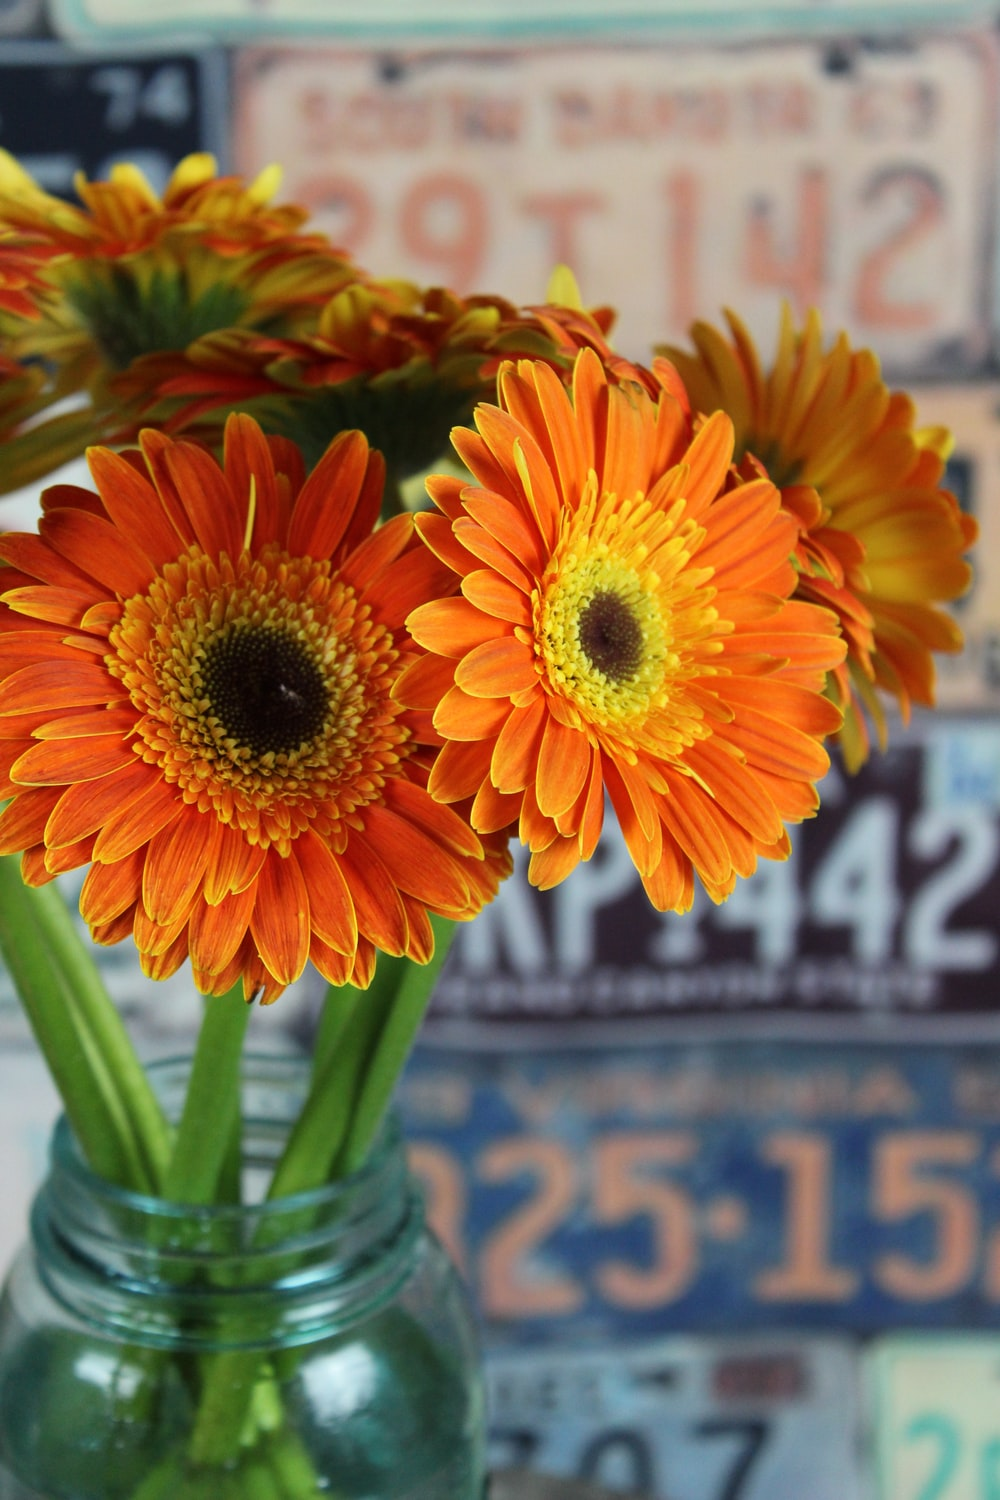 multicolored daisy flowers in clear glass vase